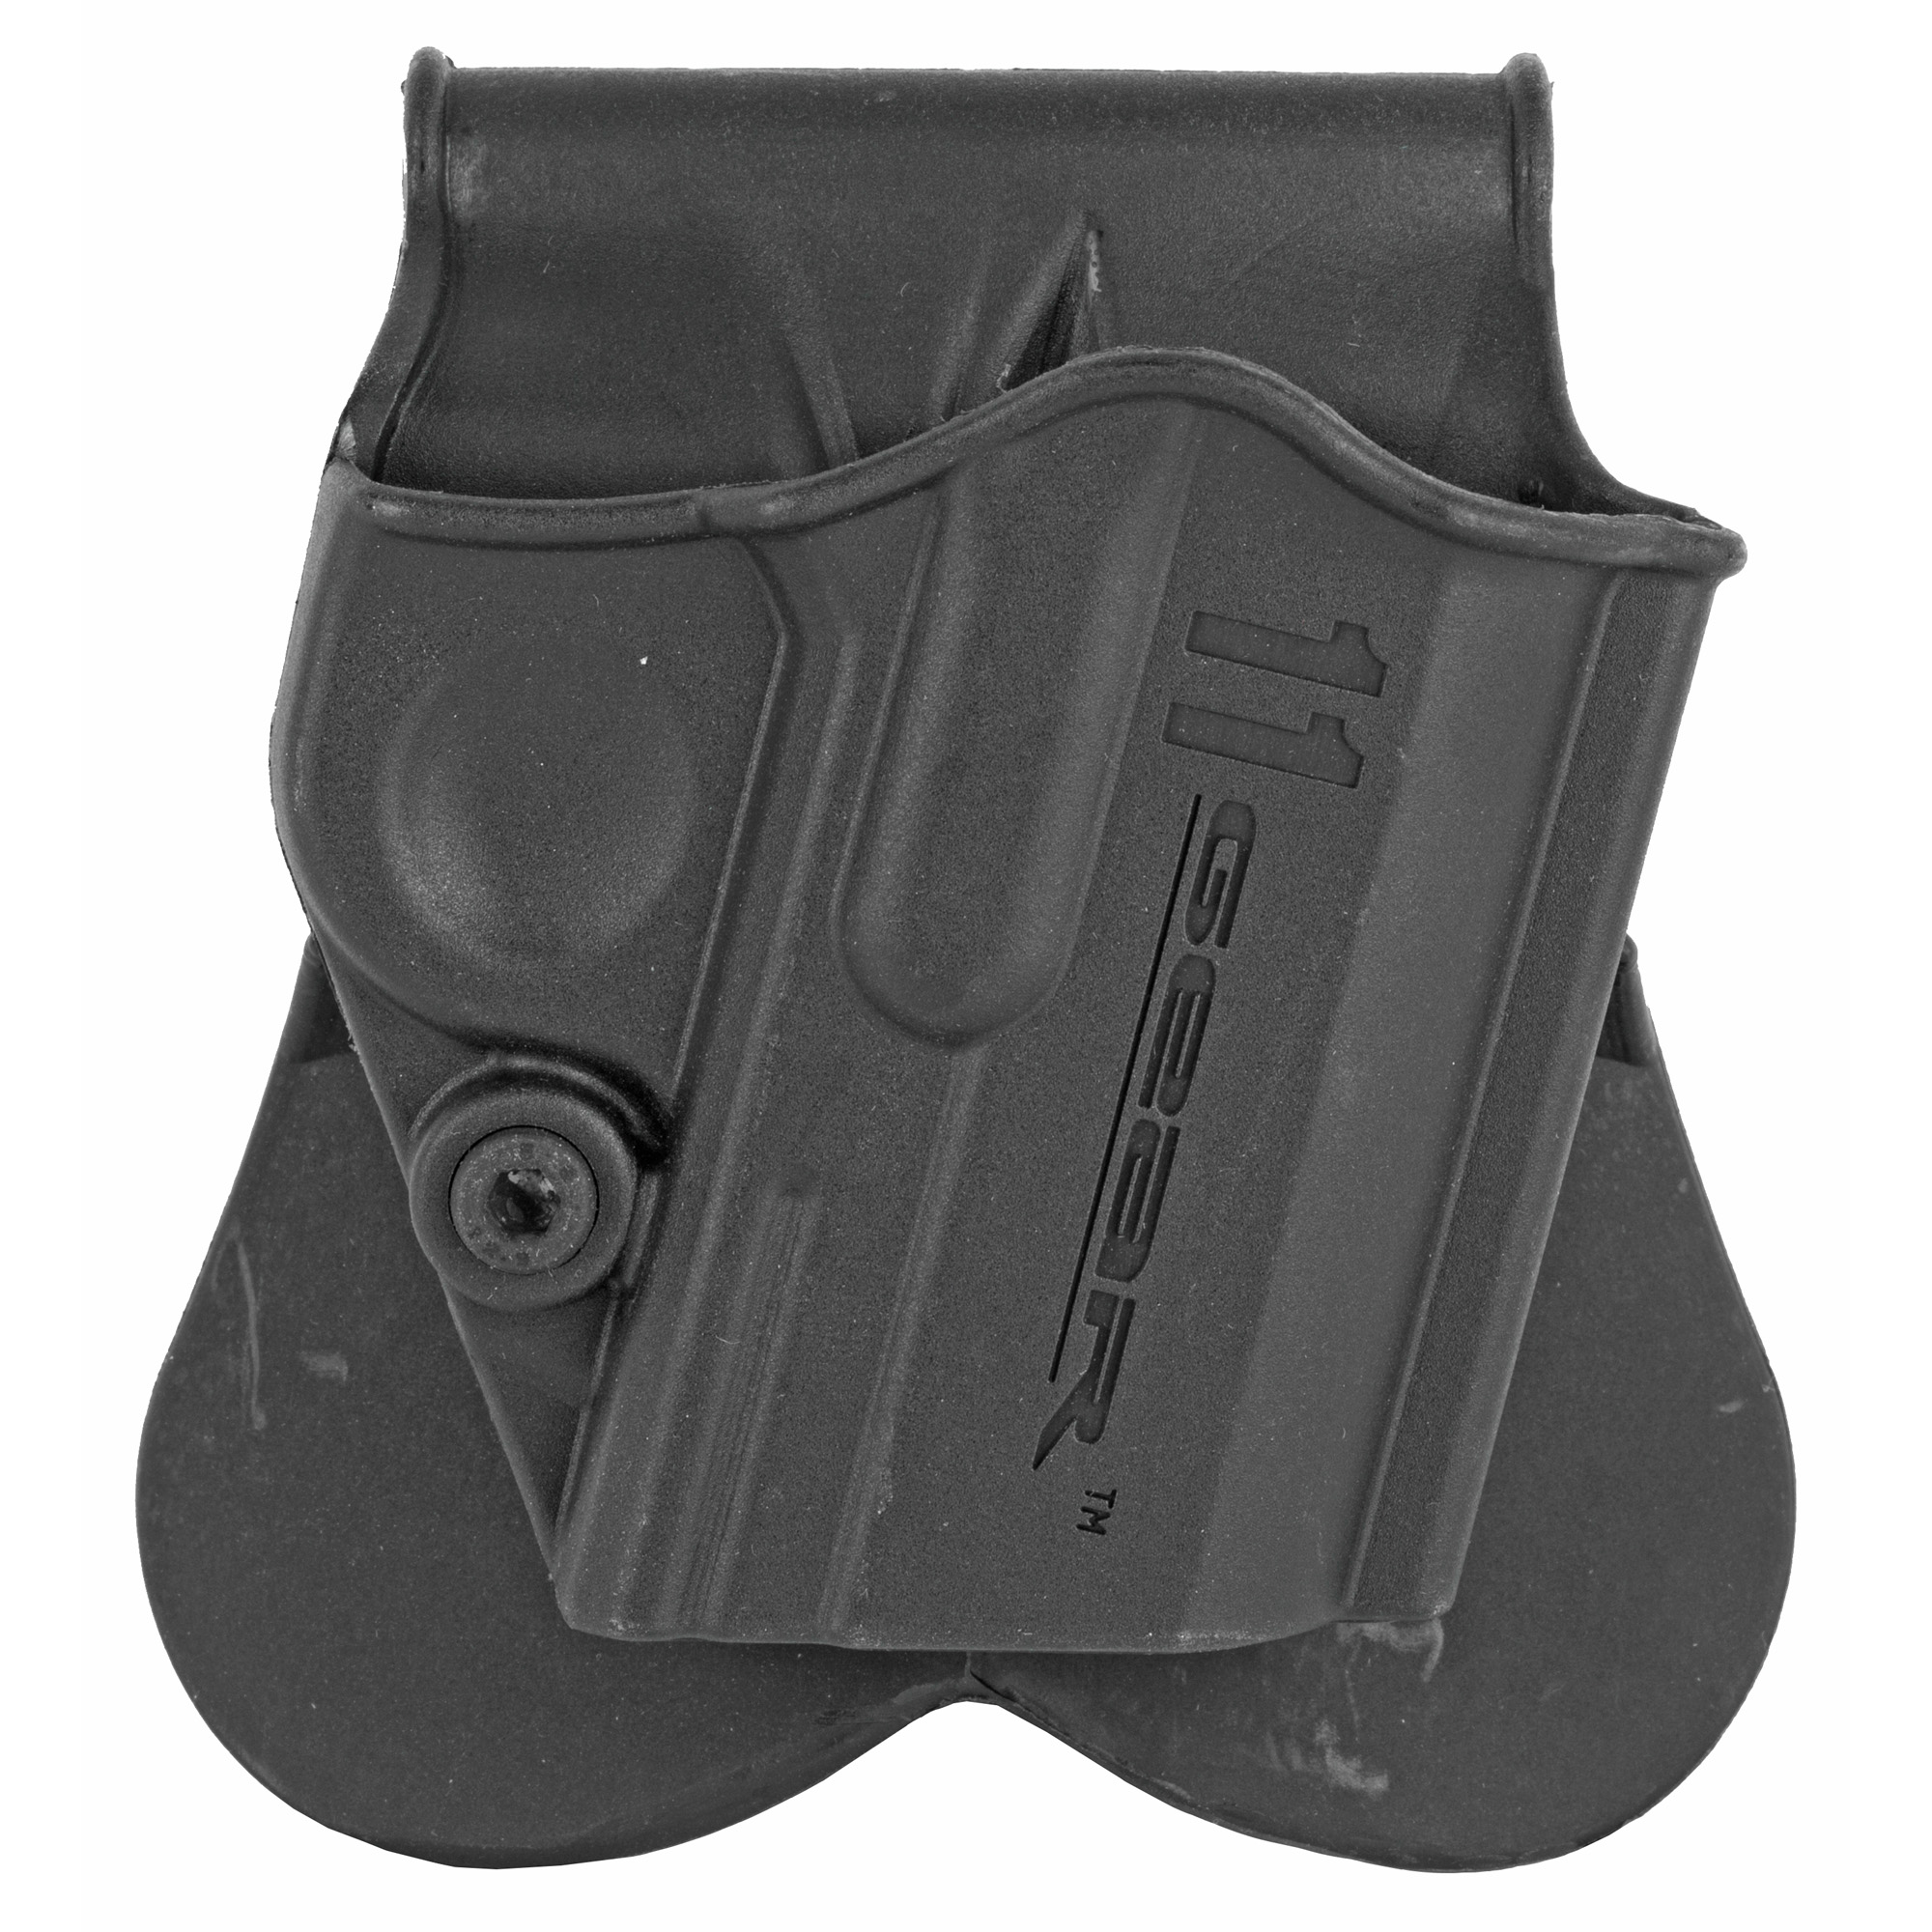 This one piece paddle holster from Springfield fits 1911's.